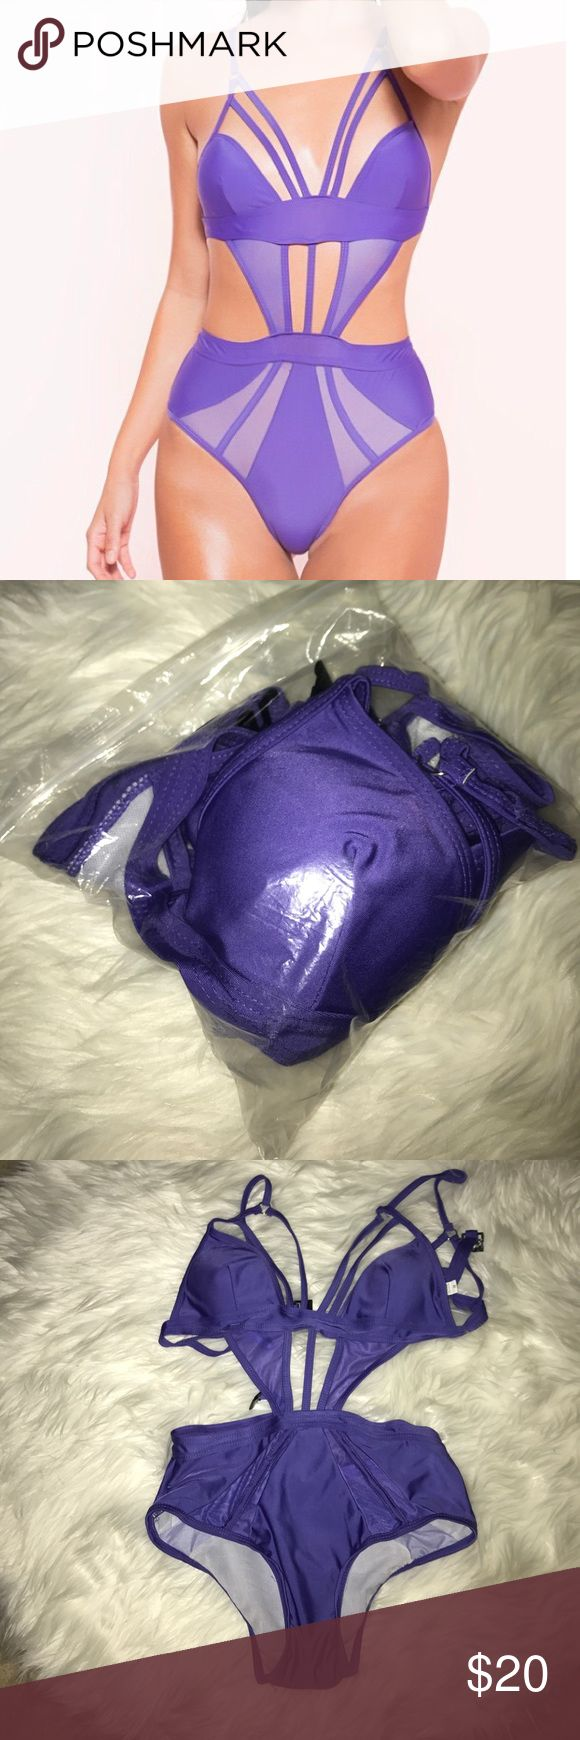 Purple swimsuit Purple one-piece cut-out swimsuit size Large (fits more like a medium with smaller breast cup sizes). Never worn. Swim One Pieces